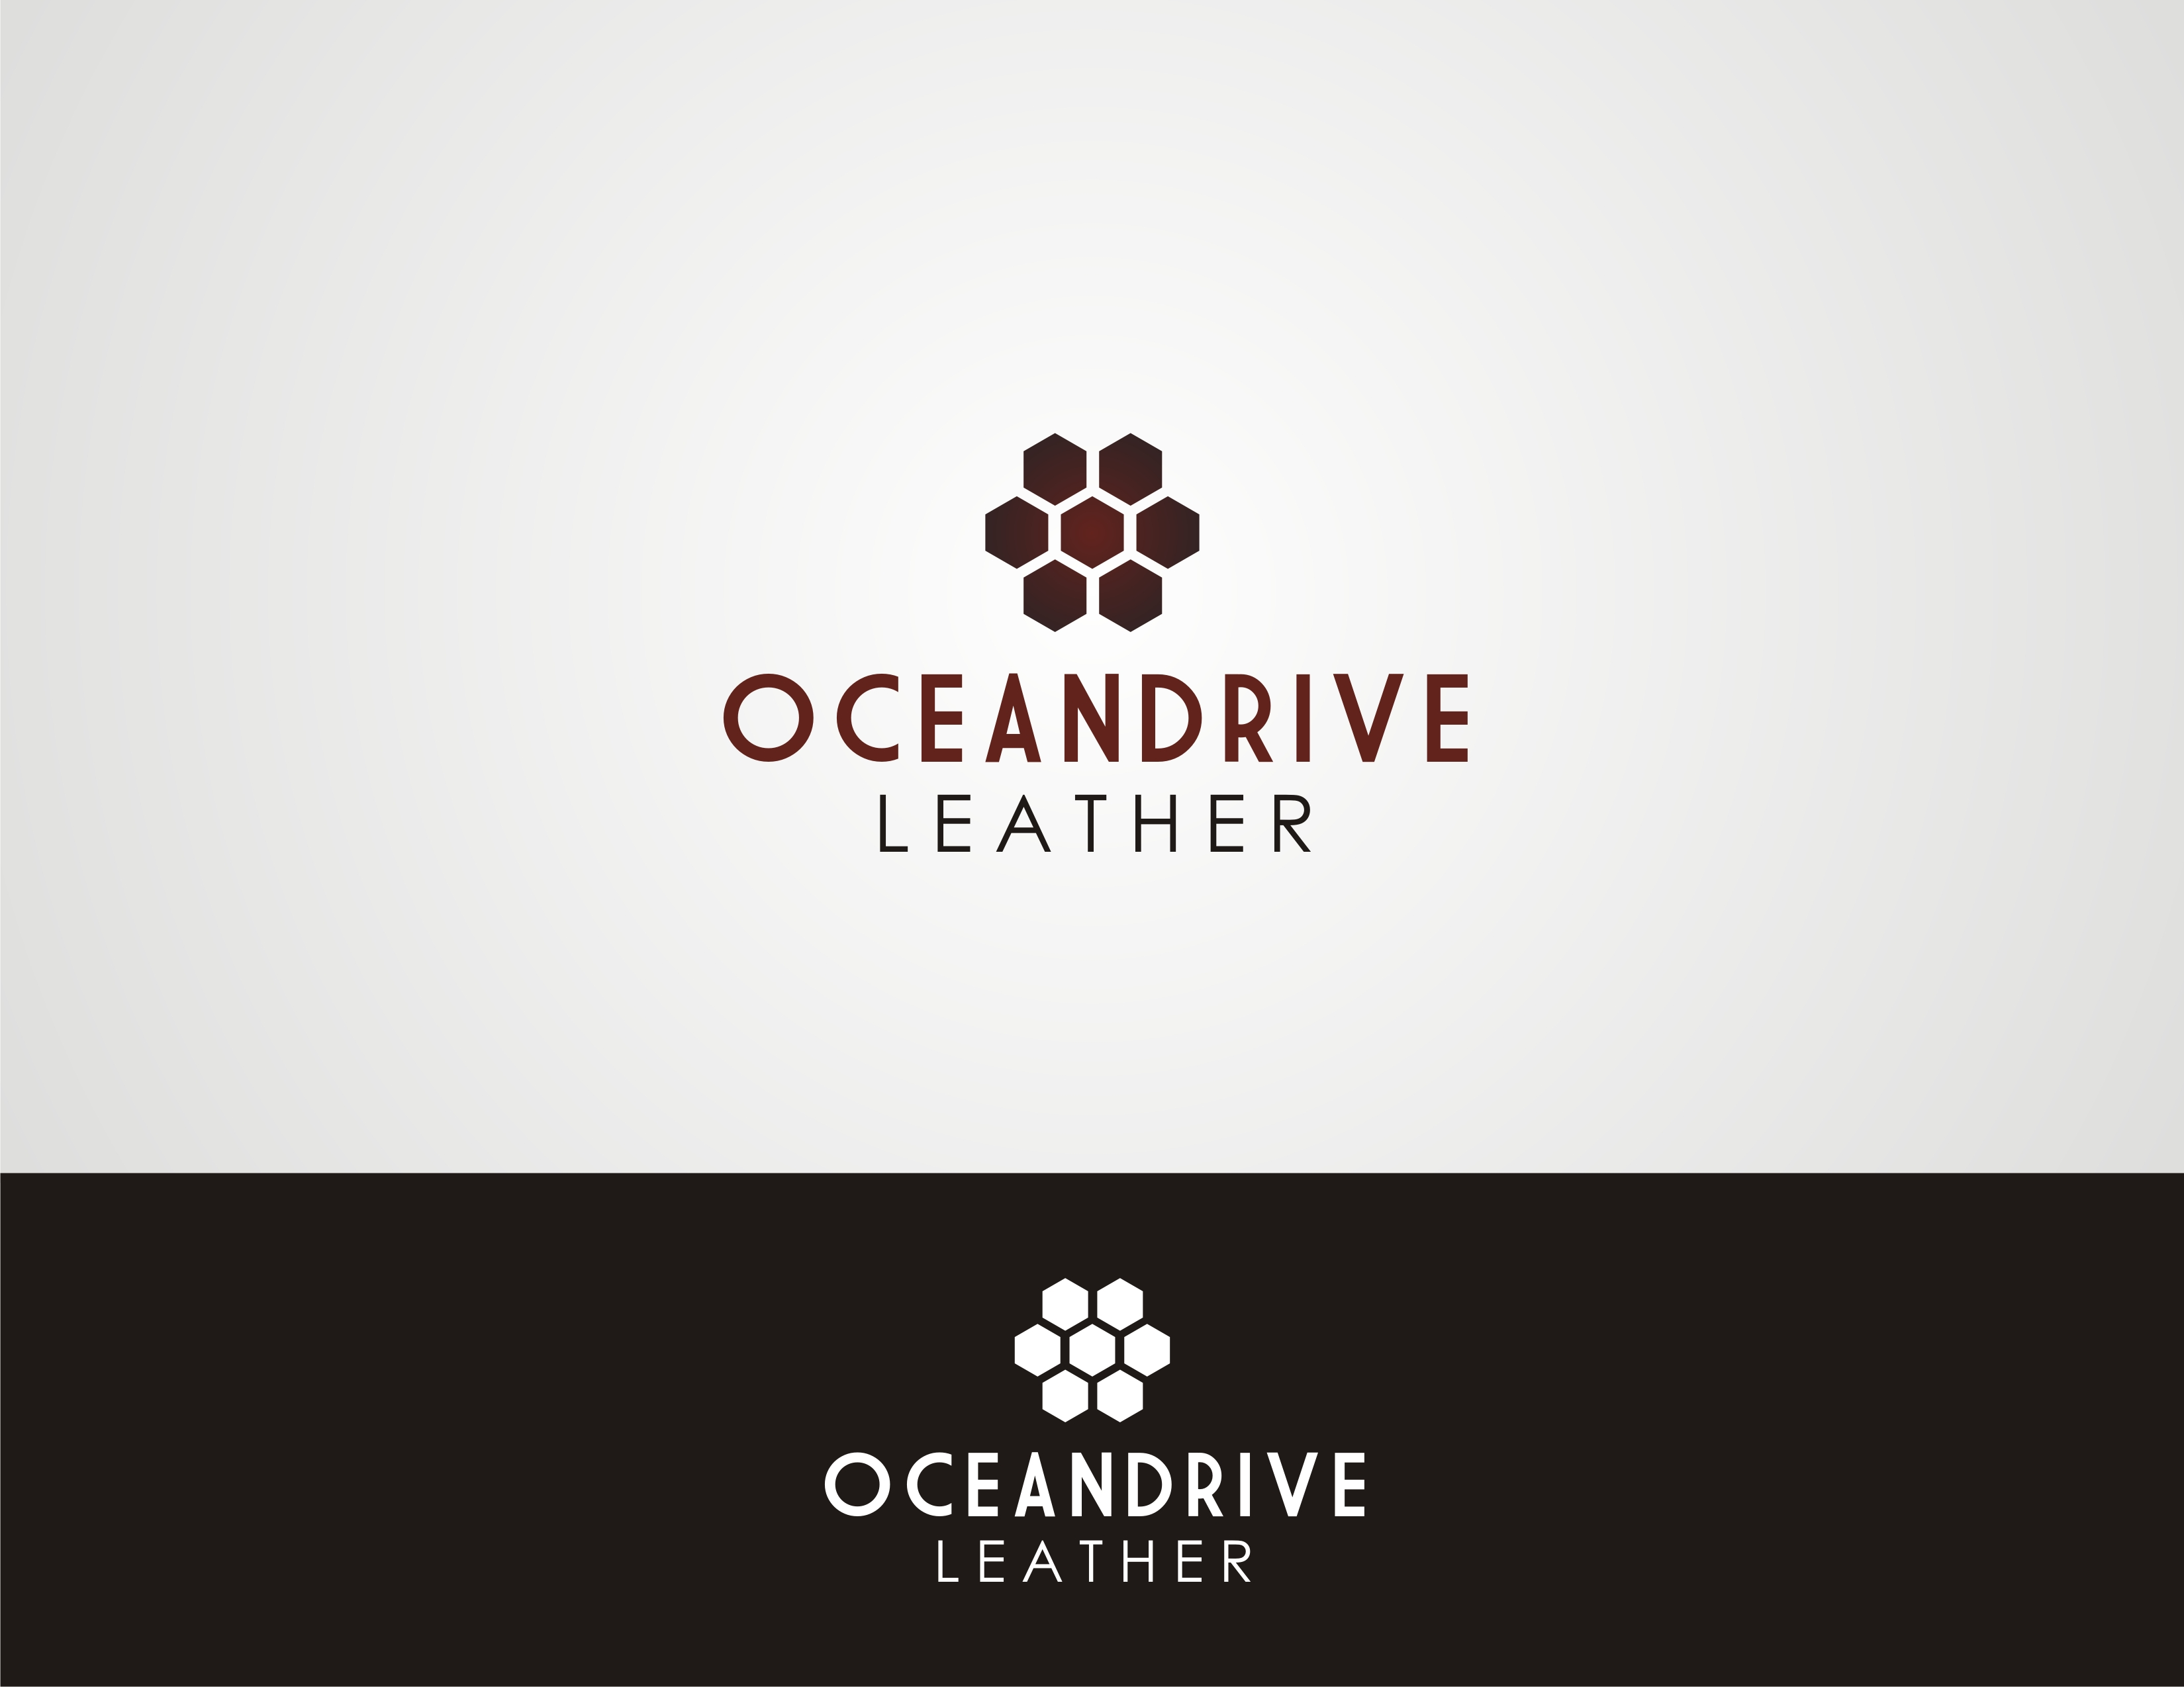 Logo Design by Sourav Sarkar - Entry No. 58 in the Logo Design Contest Captivating Logo Design for Oceandrive Leather.